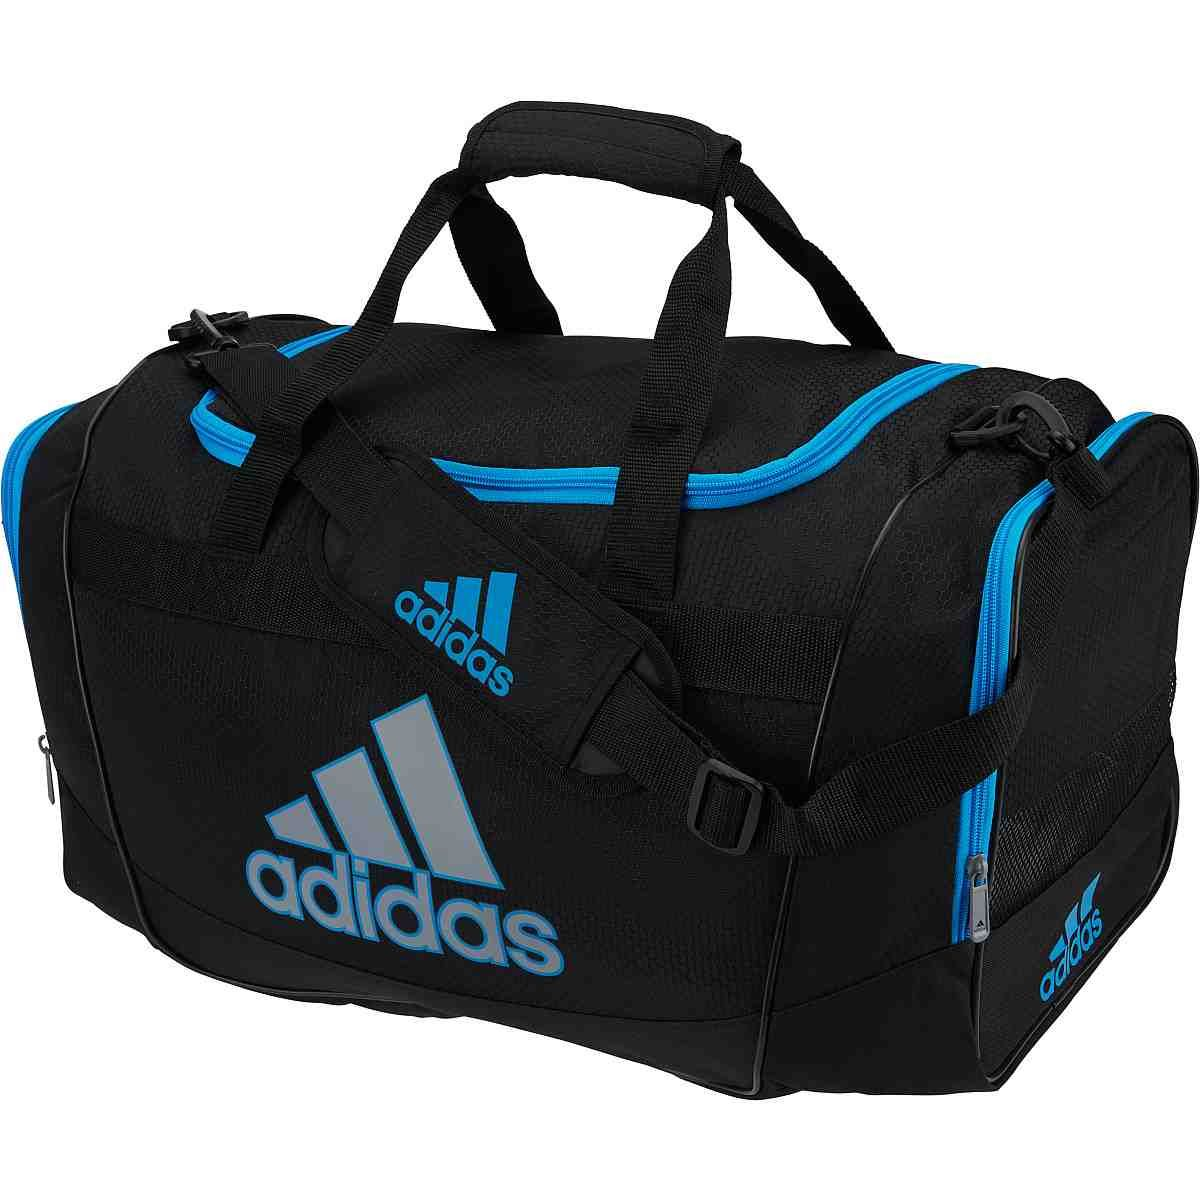 Sports Authority Duffel Bags